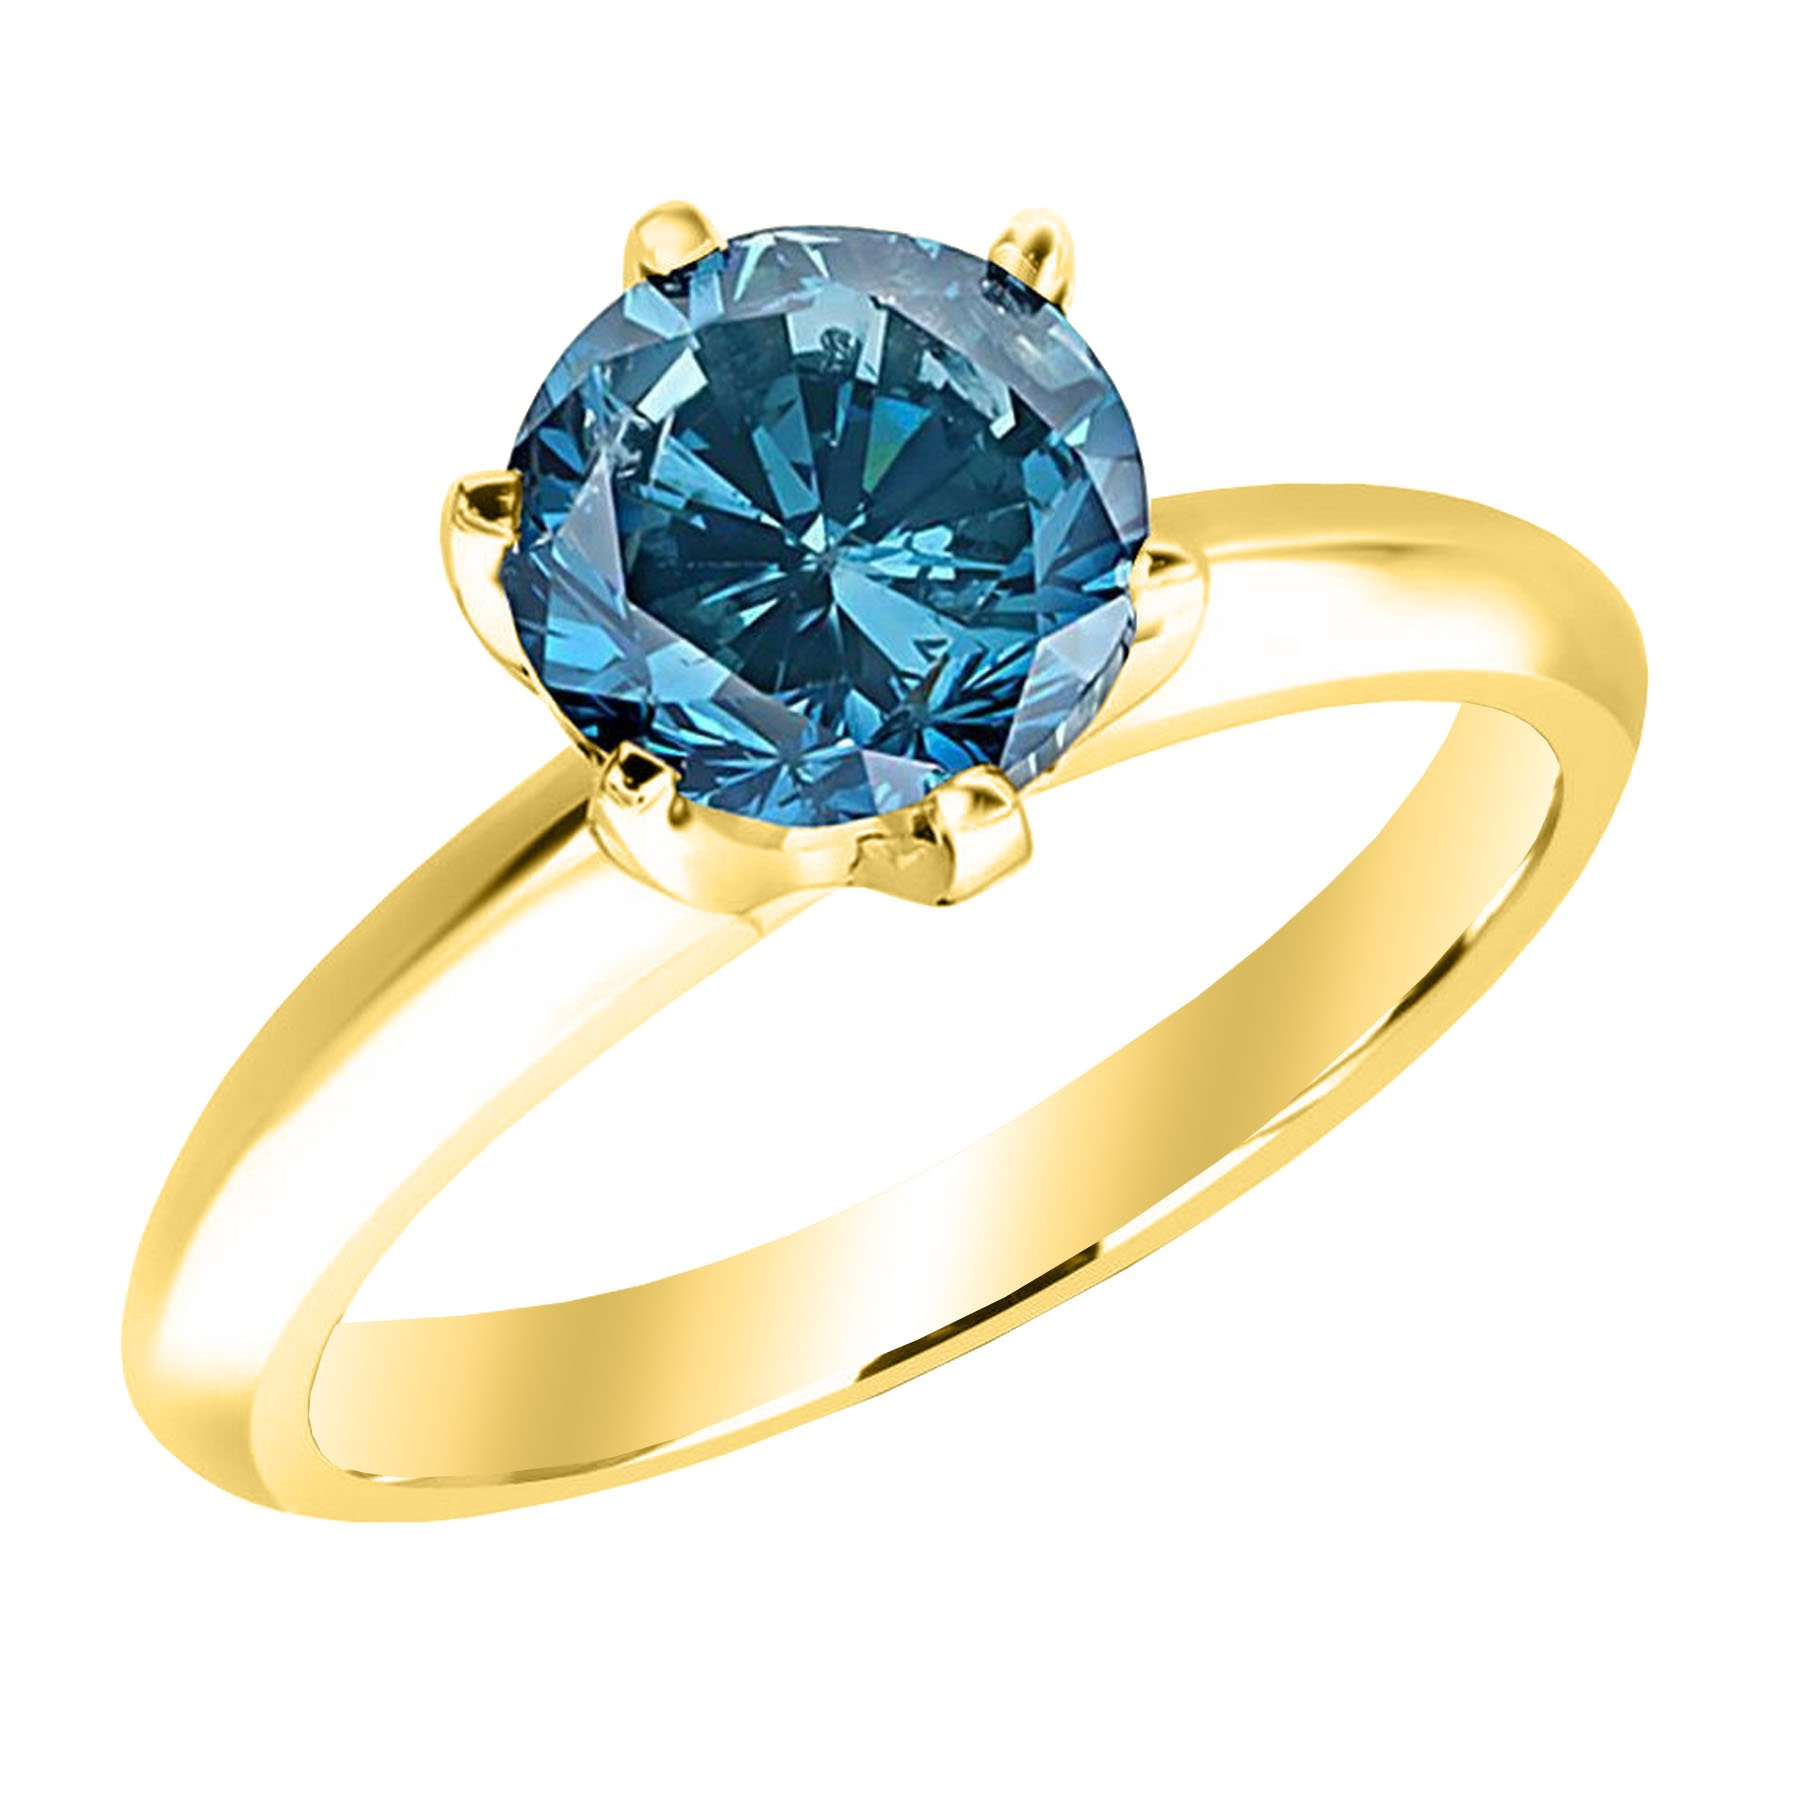 1 Carat 14K Yellow Gold Round Blue Diamond Solitaire Ring (AAA Quality)